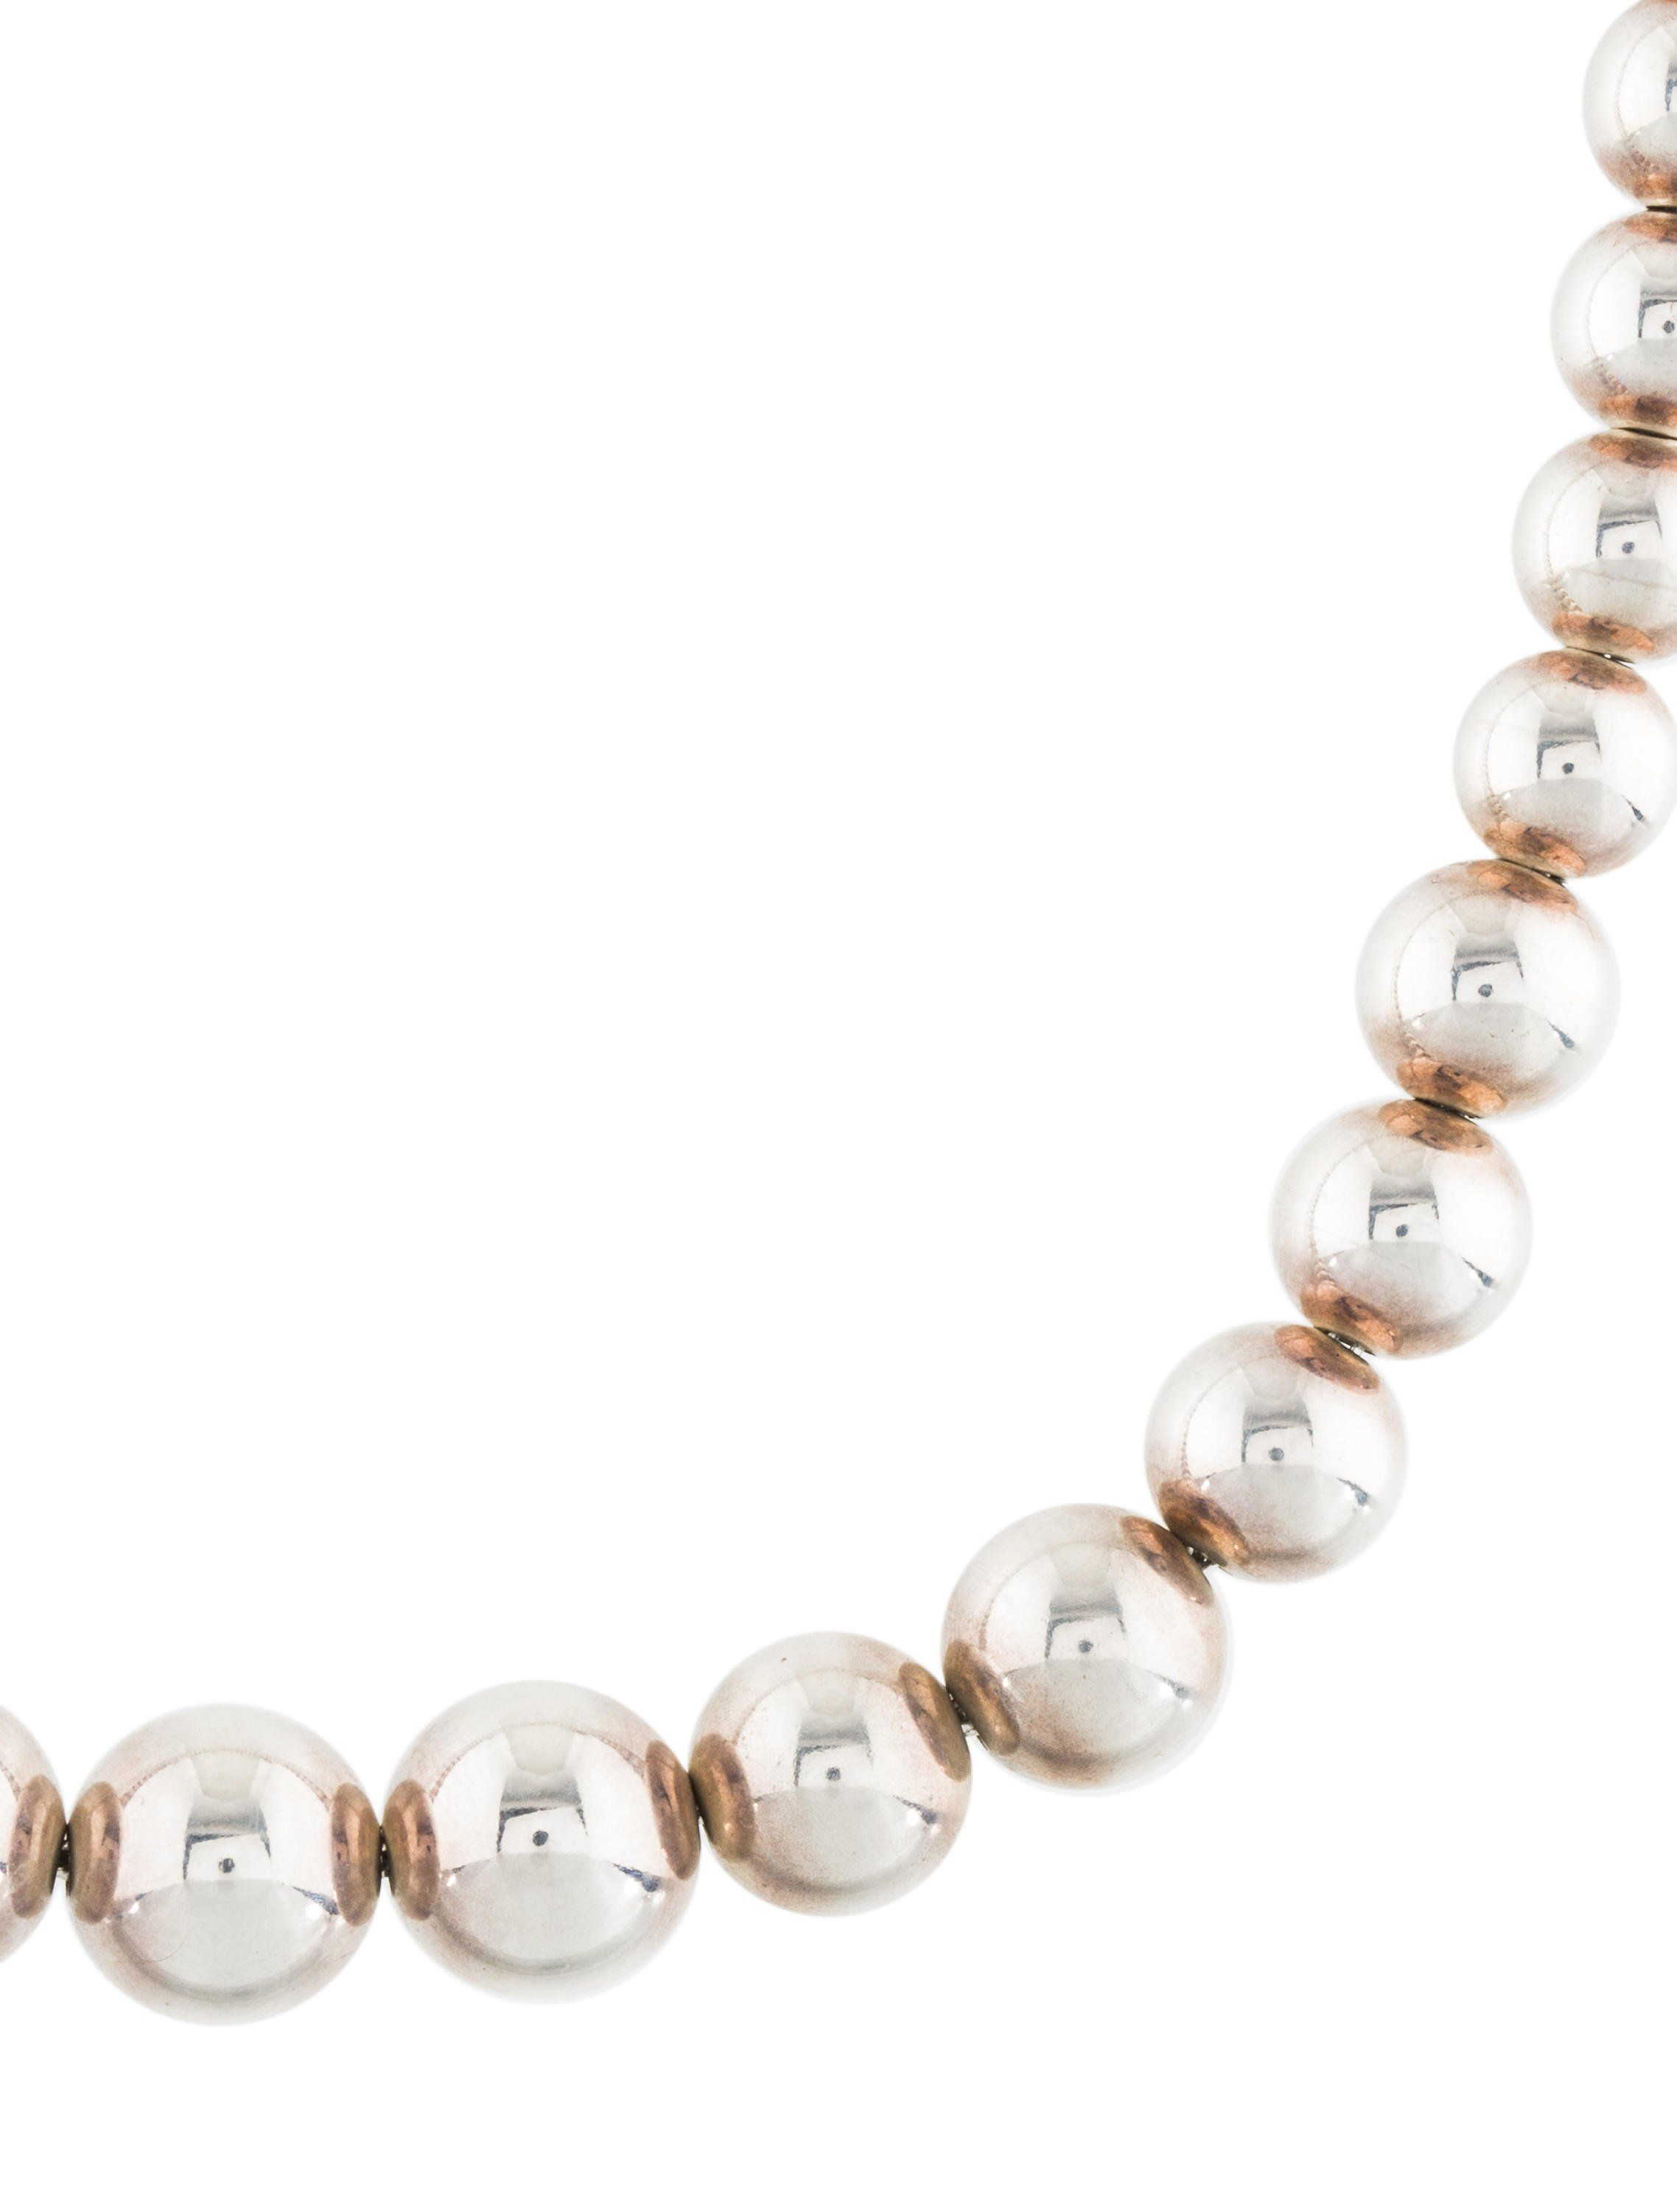 8129e29df Sterling silver Tiffany & Co. HardWear Graduated Ball necklace featuring  high polish finish with lobster clasp.tiffany-co#HardWear#Graduated#Ball